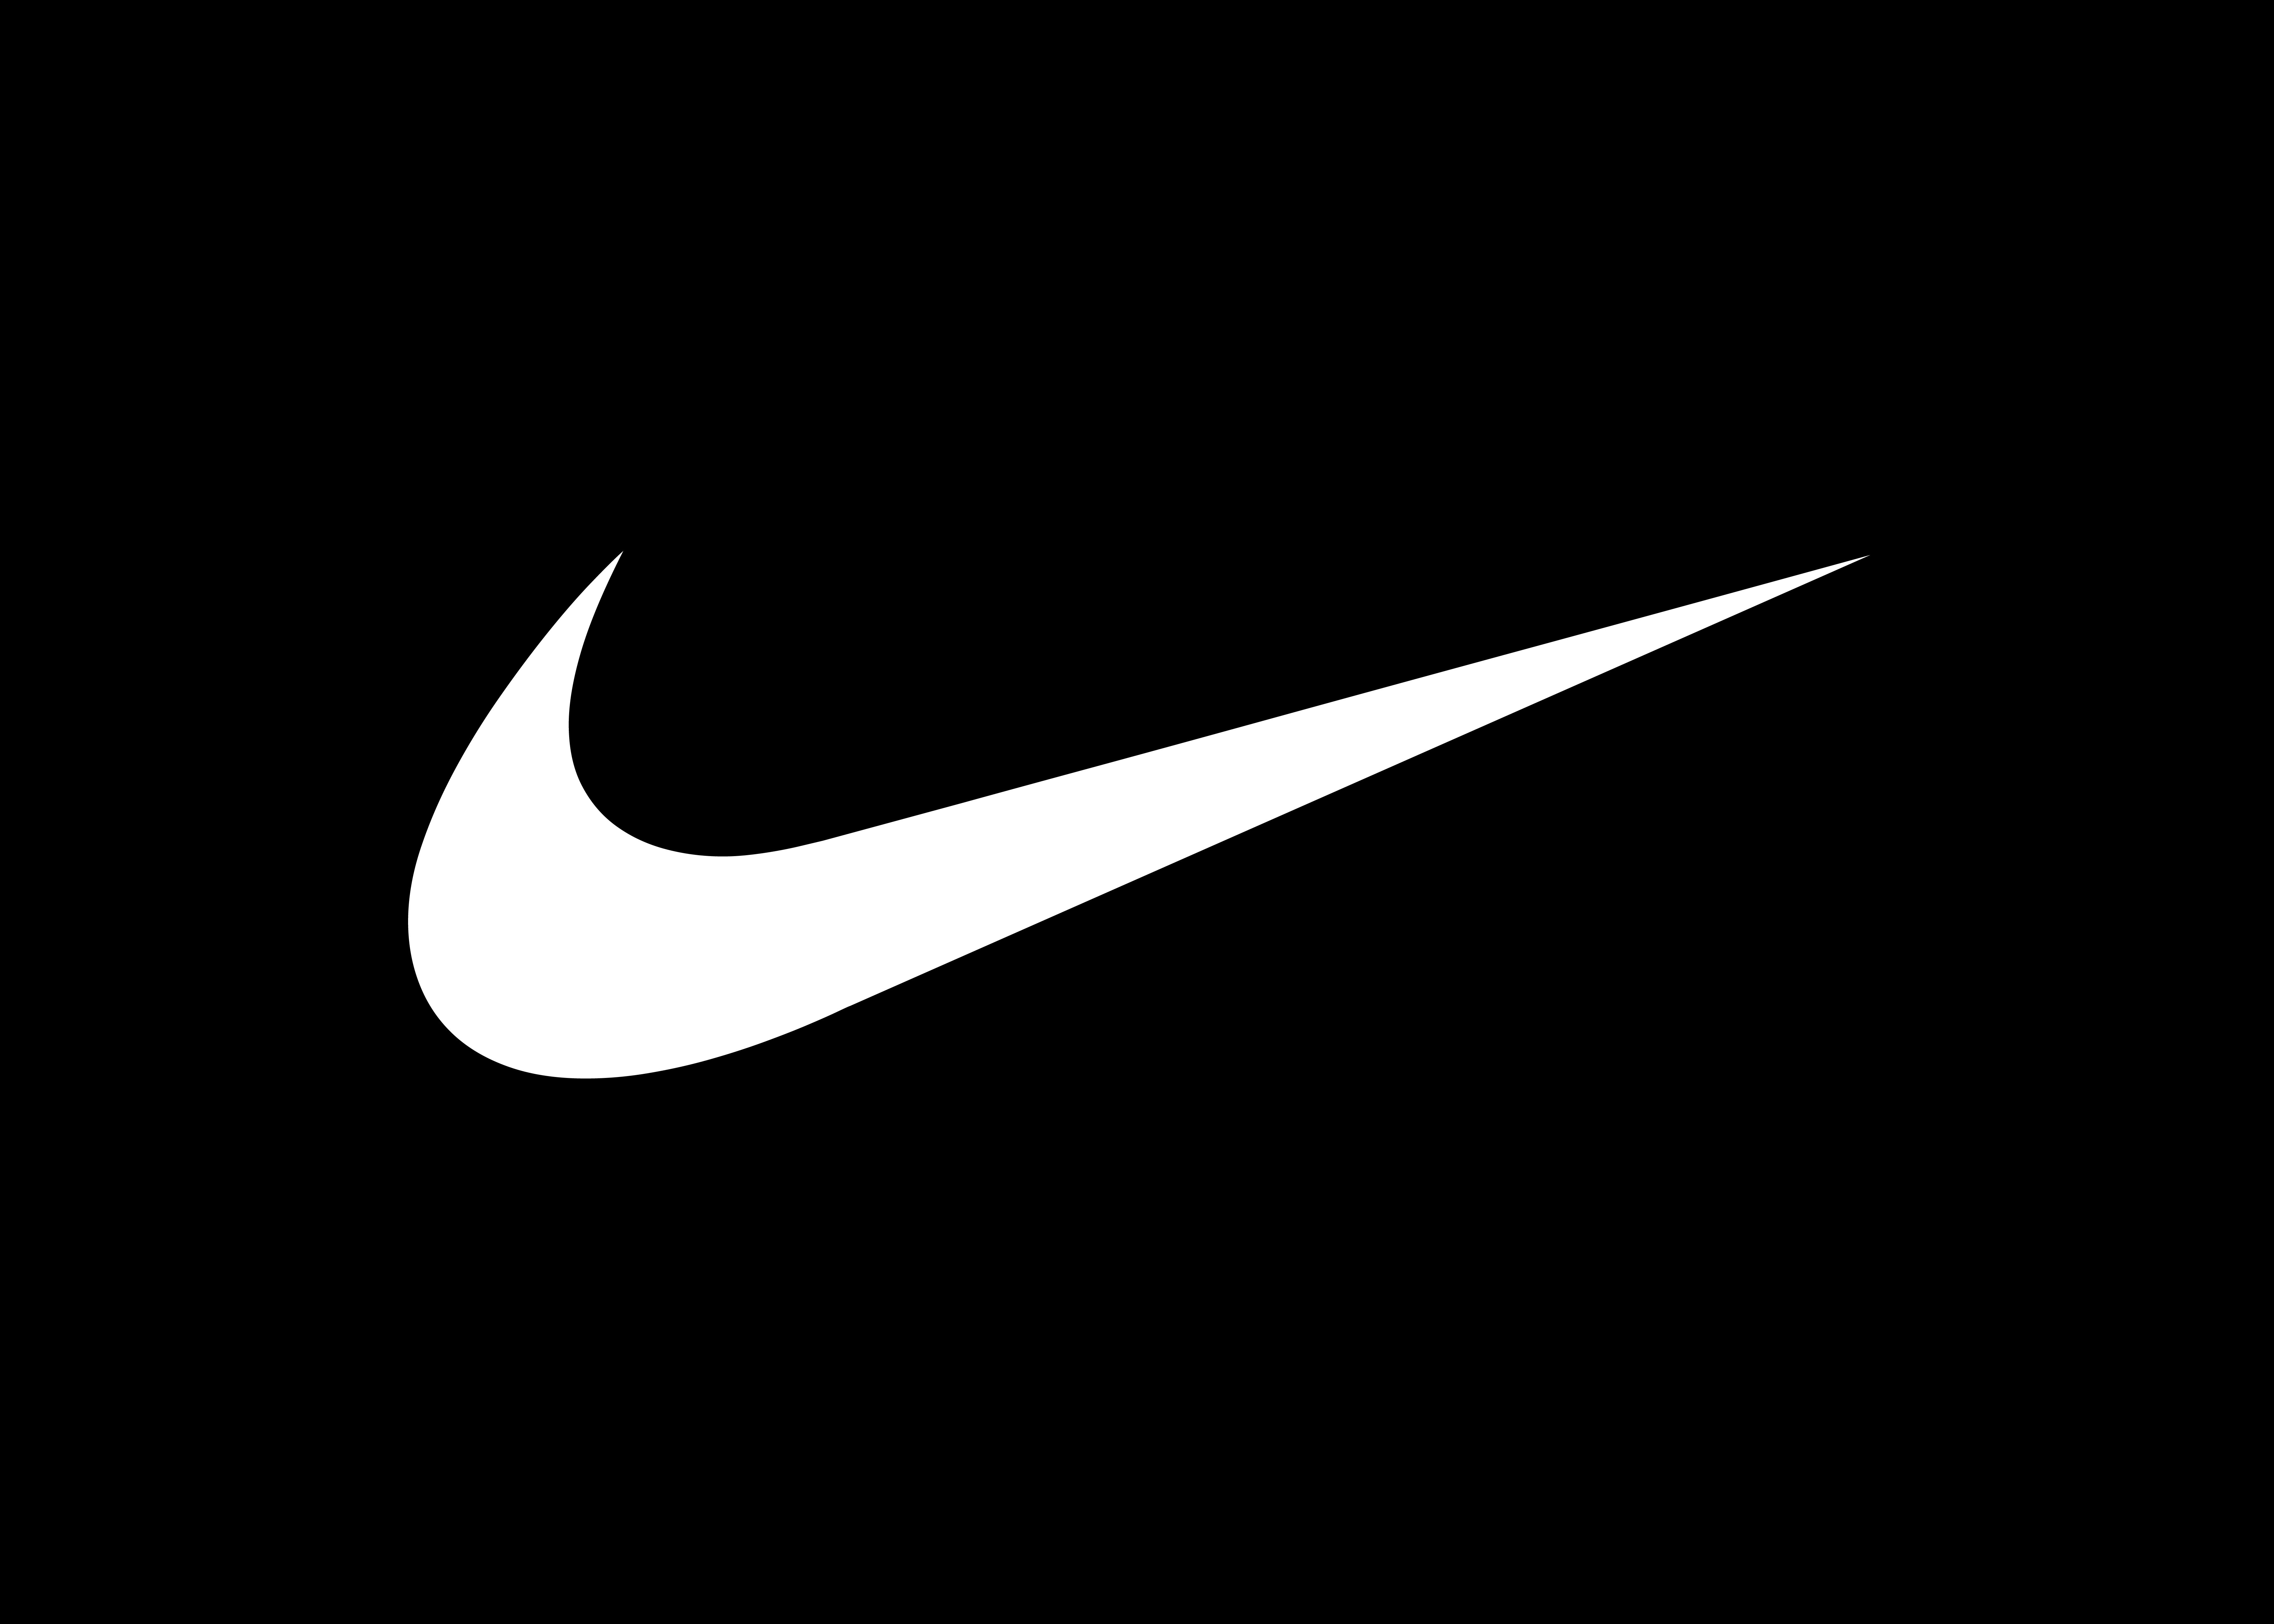 Nike Logo Wallpapers HD 2015 download Wallpapers Backgrounds 7216x5154